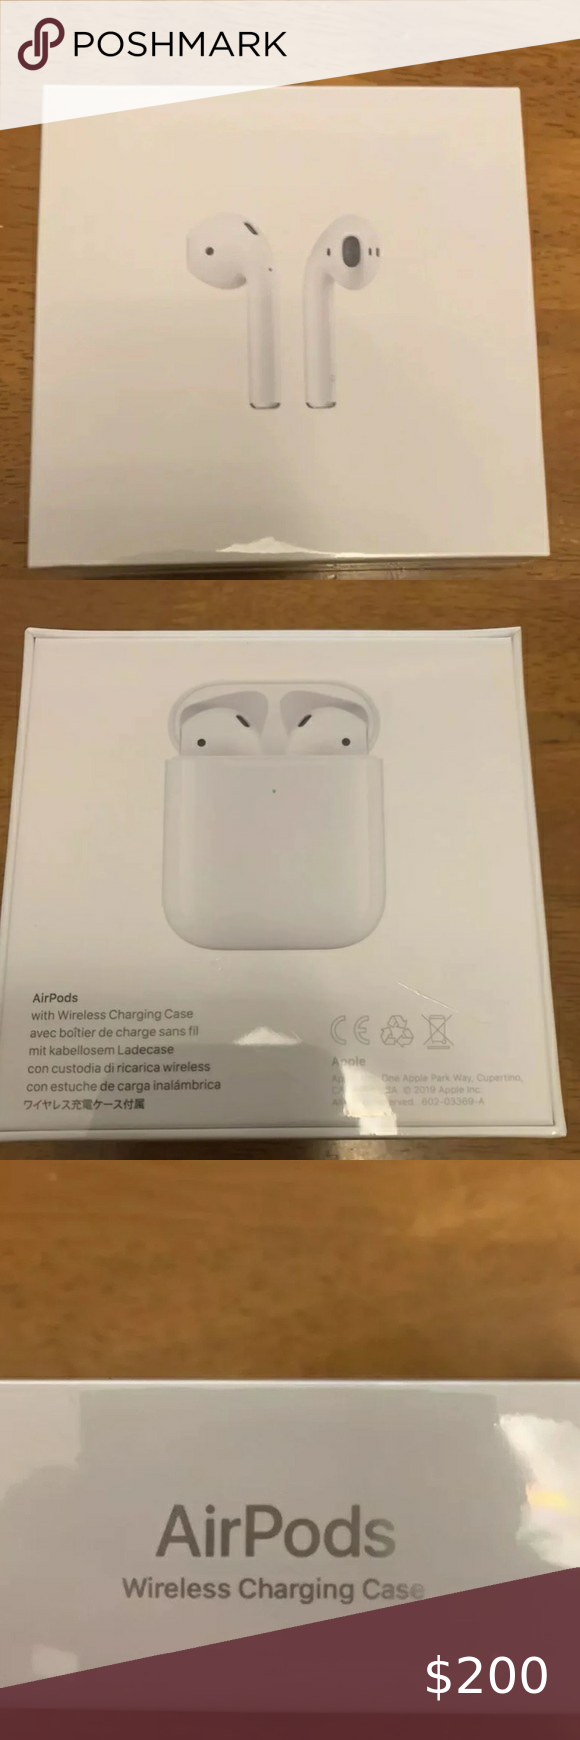 Apple Airpods 2nd Generation New Sealed Never Been Used Not The Airpods 2 The Second Gen Airpods With Wireless Charging C Apple Airpods 2 Apple Generation